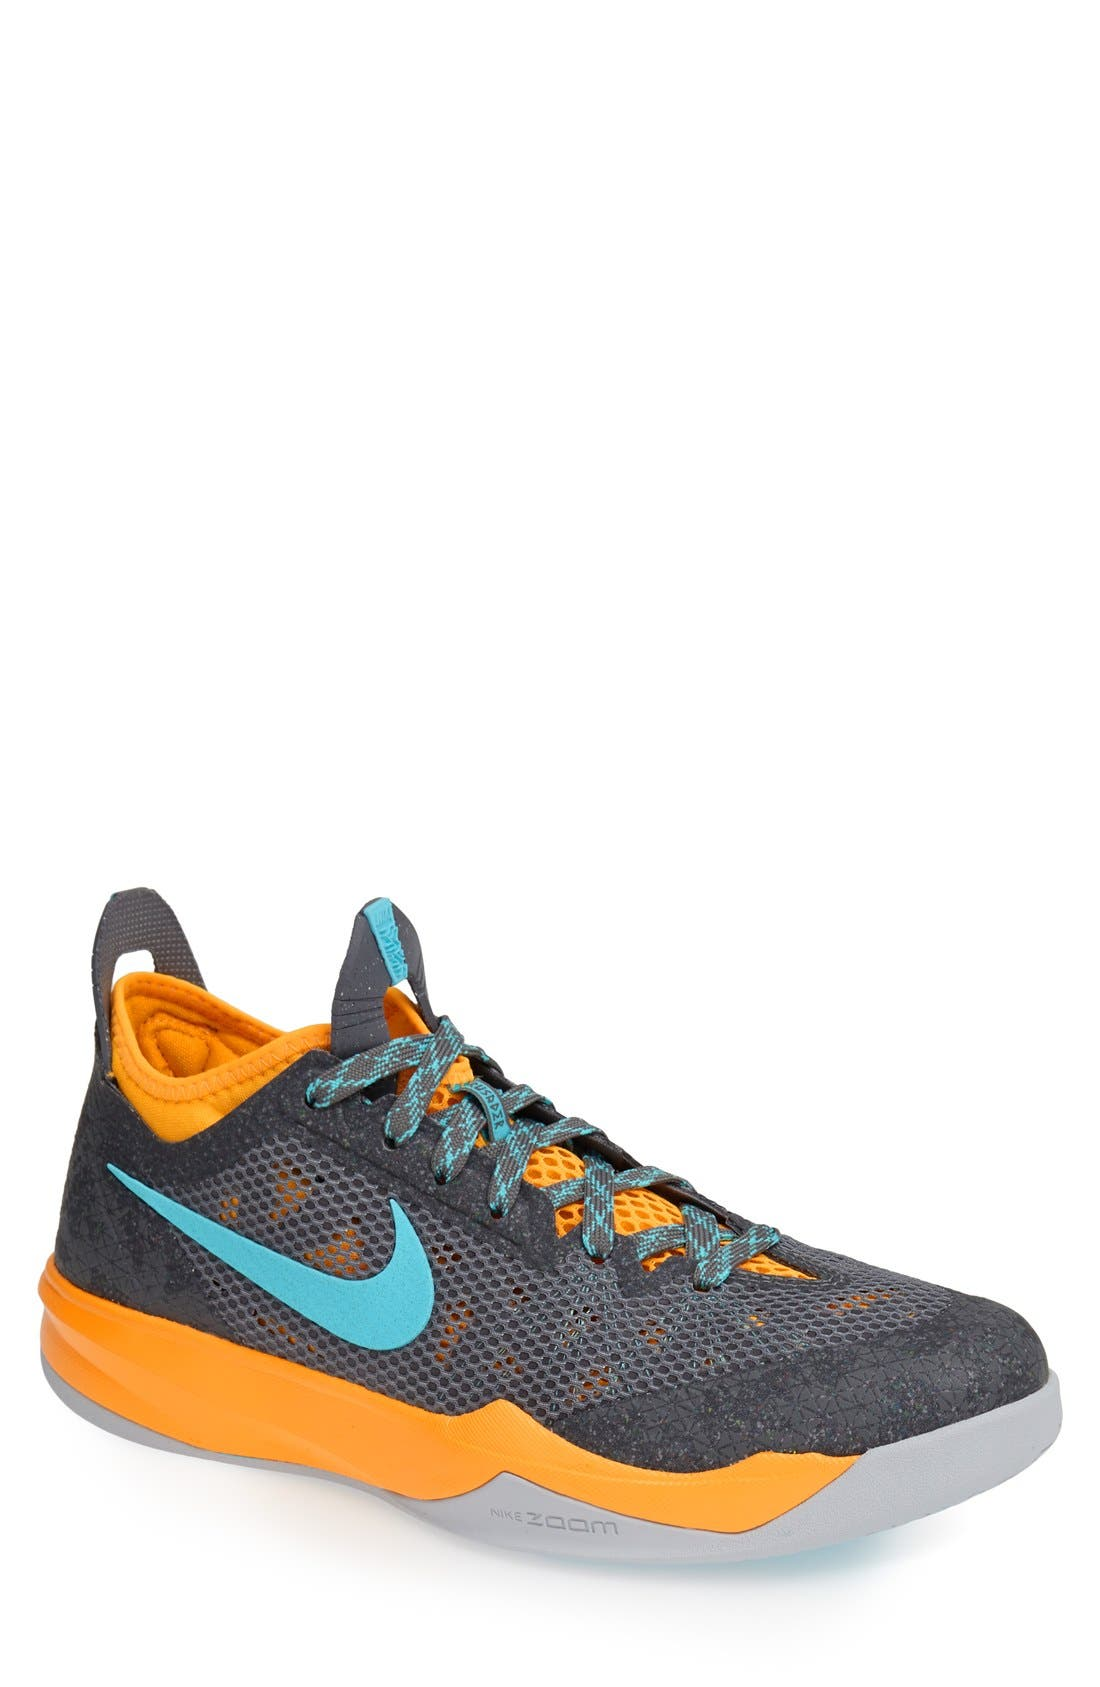 Main Image - Nike 'Zoom Crusader' Outdoor Basketball Shoe (Men)